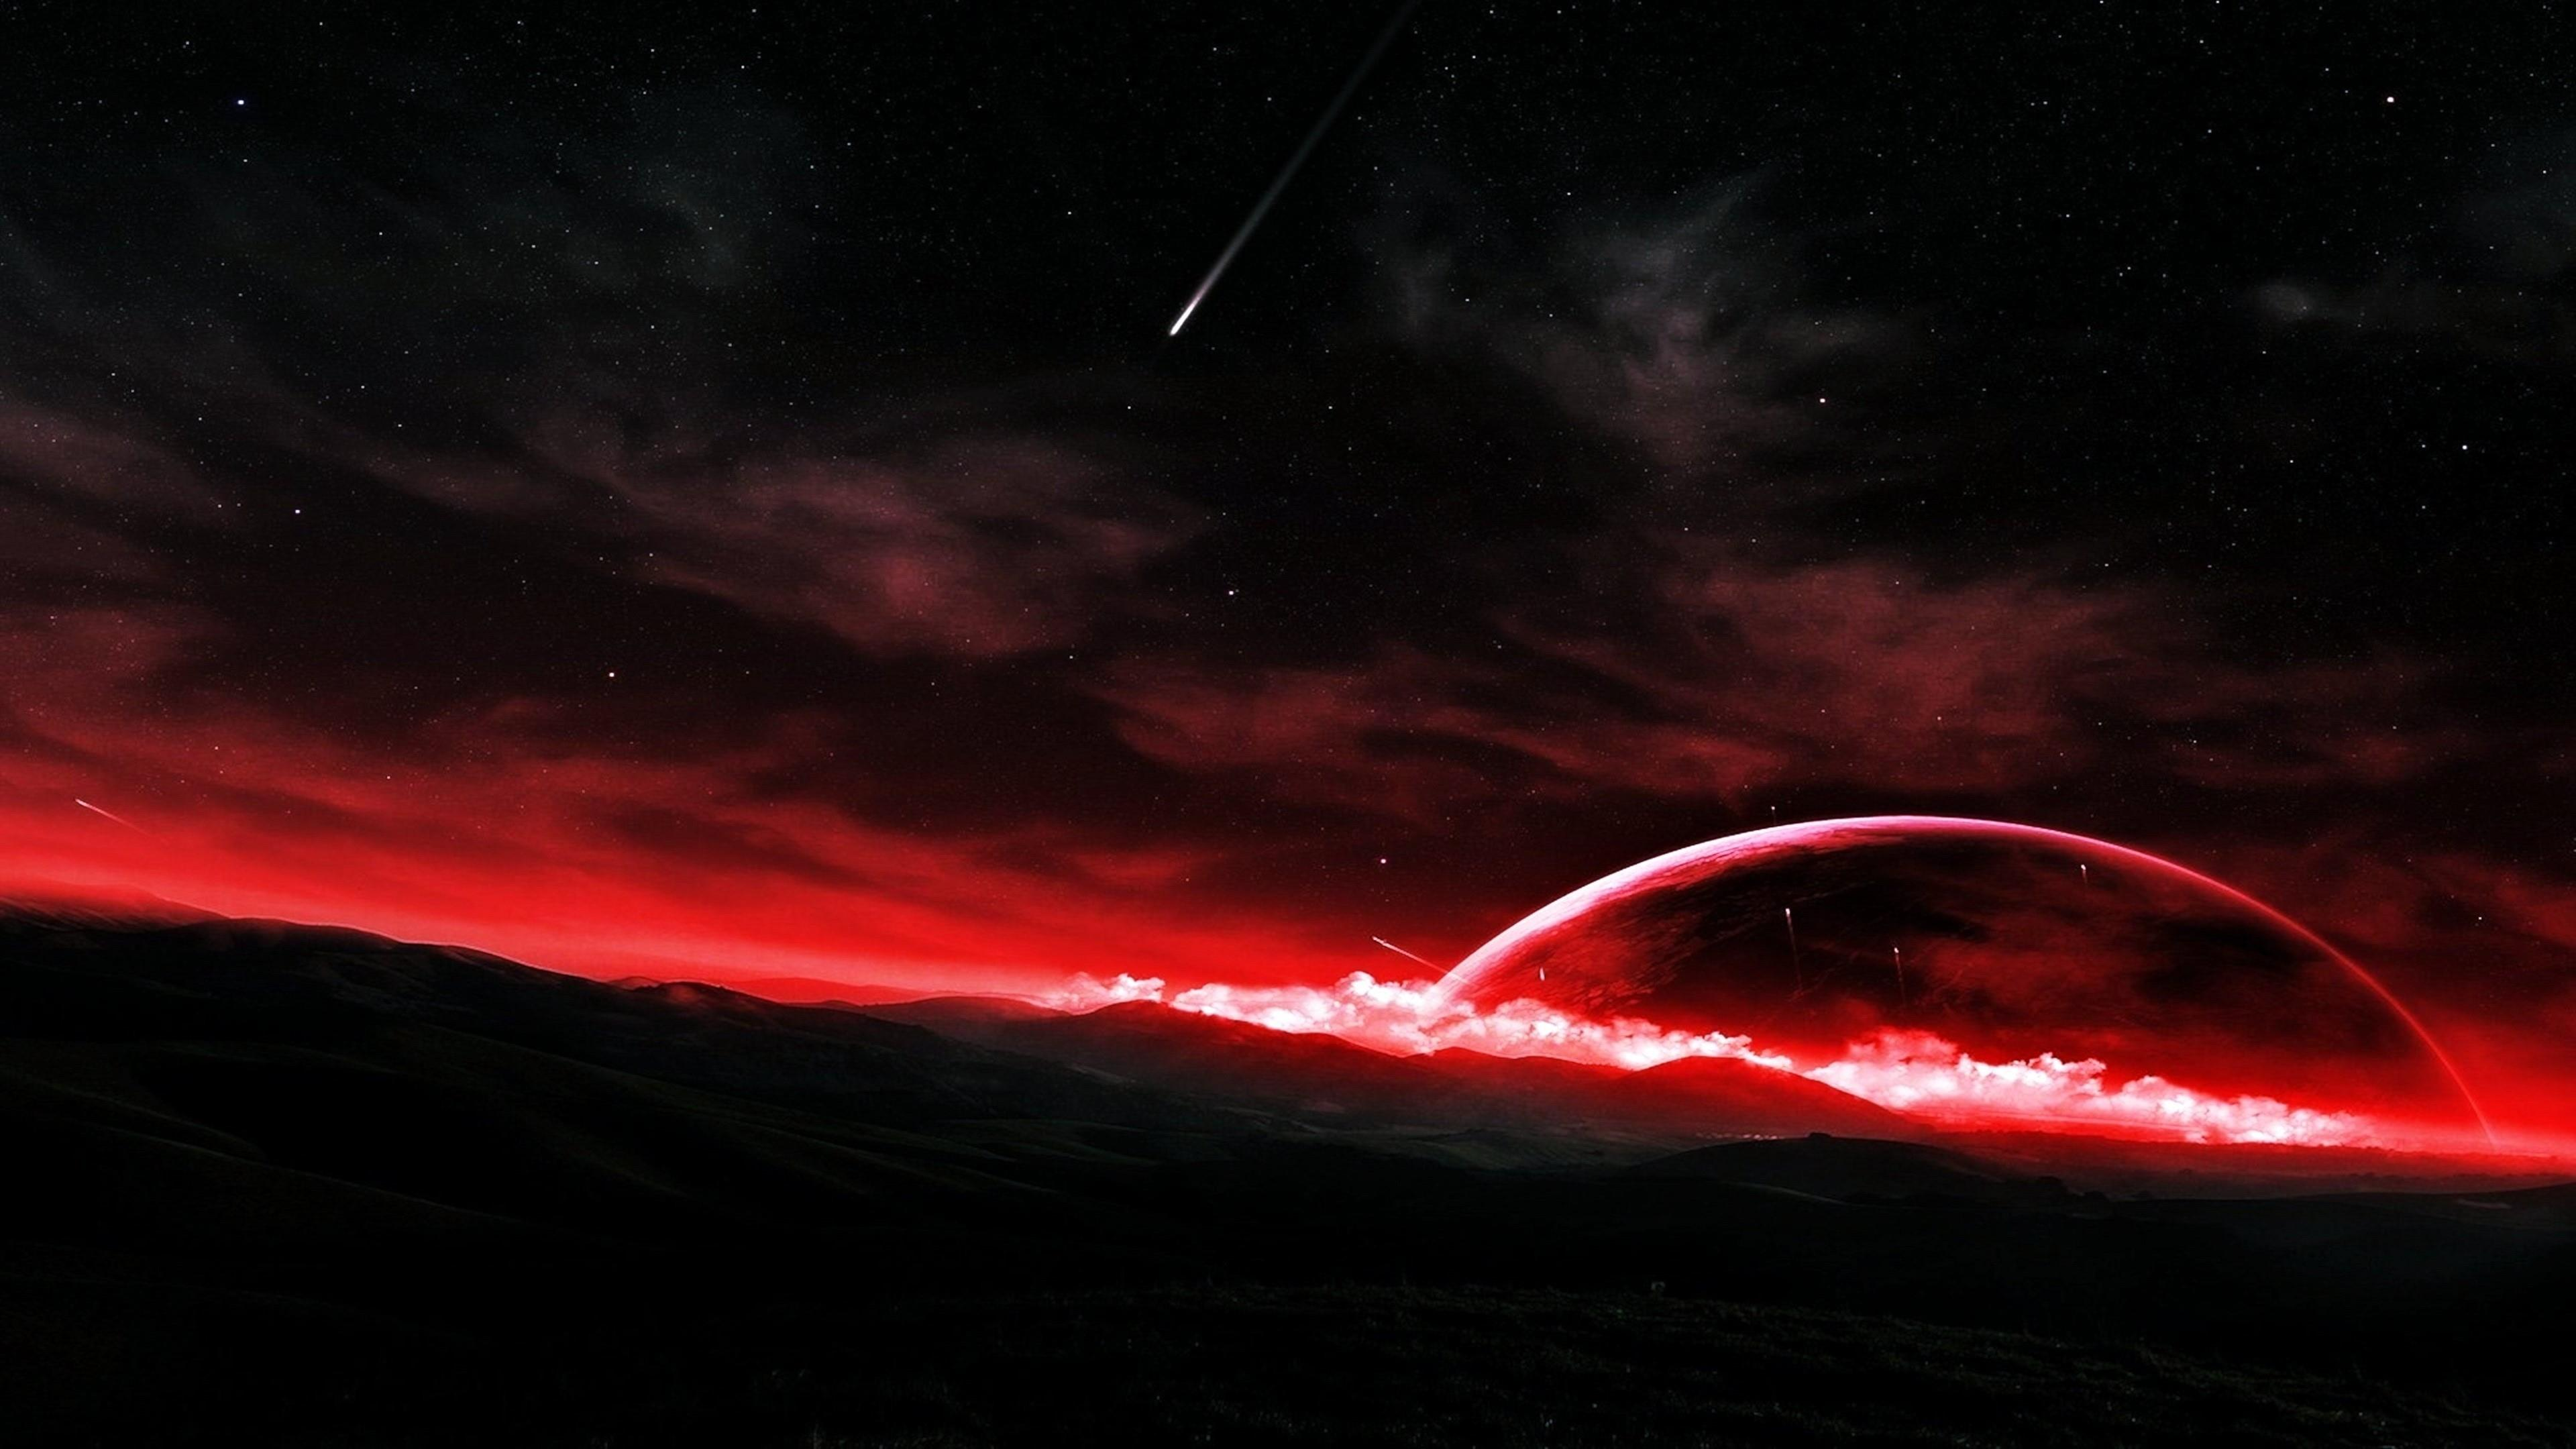 Red horizon - Fantasy space art wallpaper